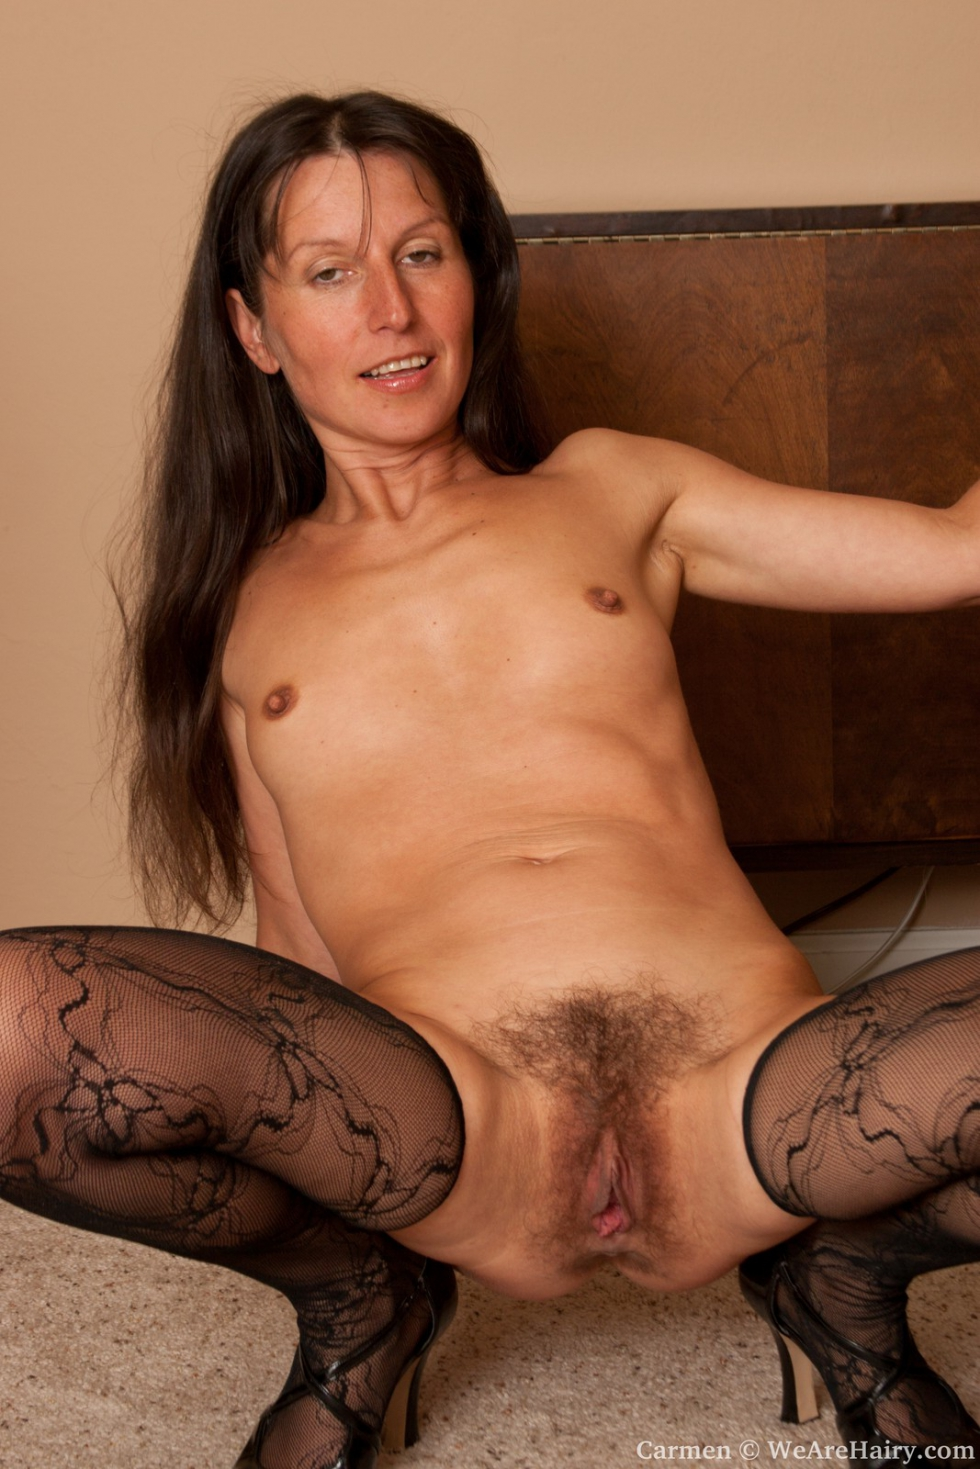 Hairy nude older women for free